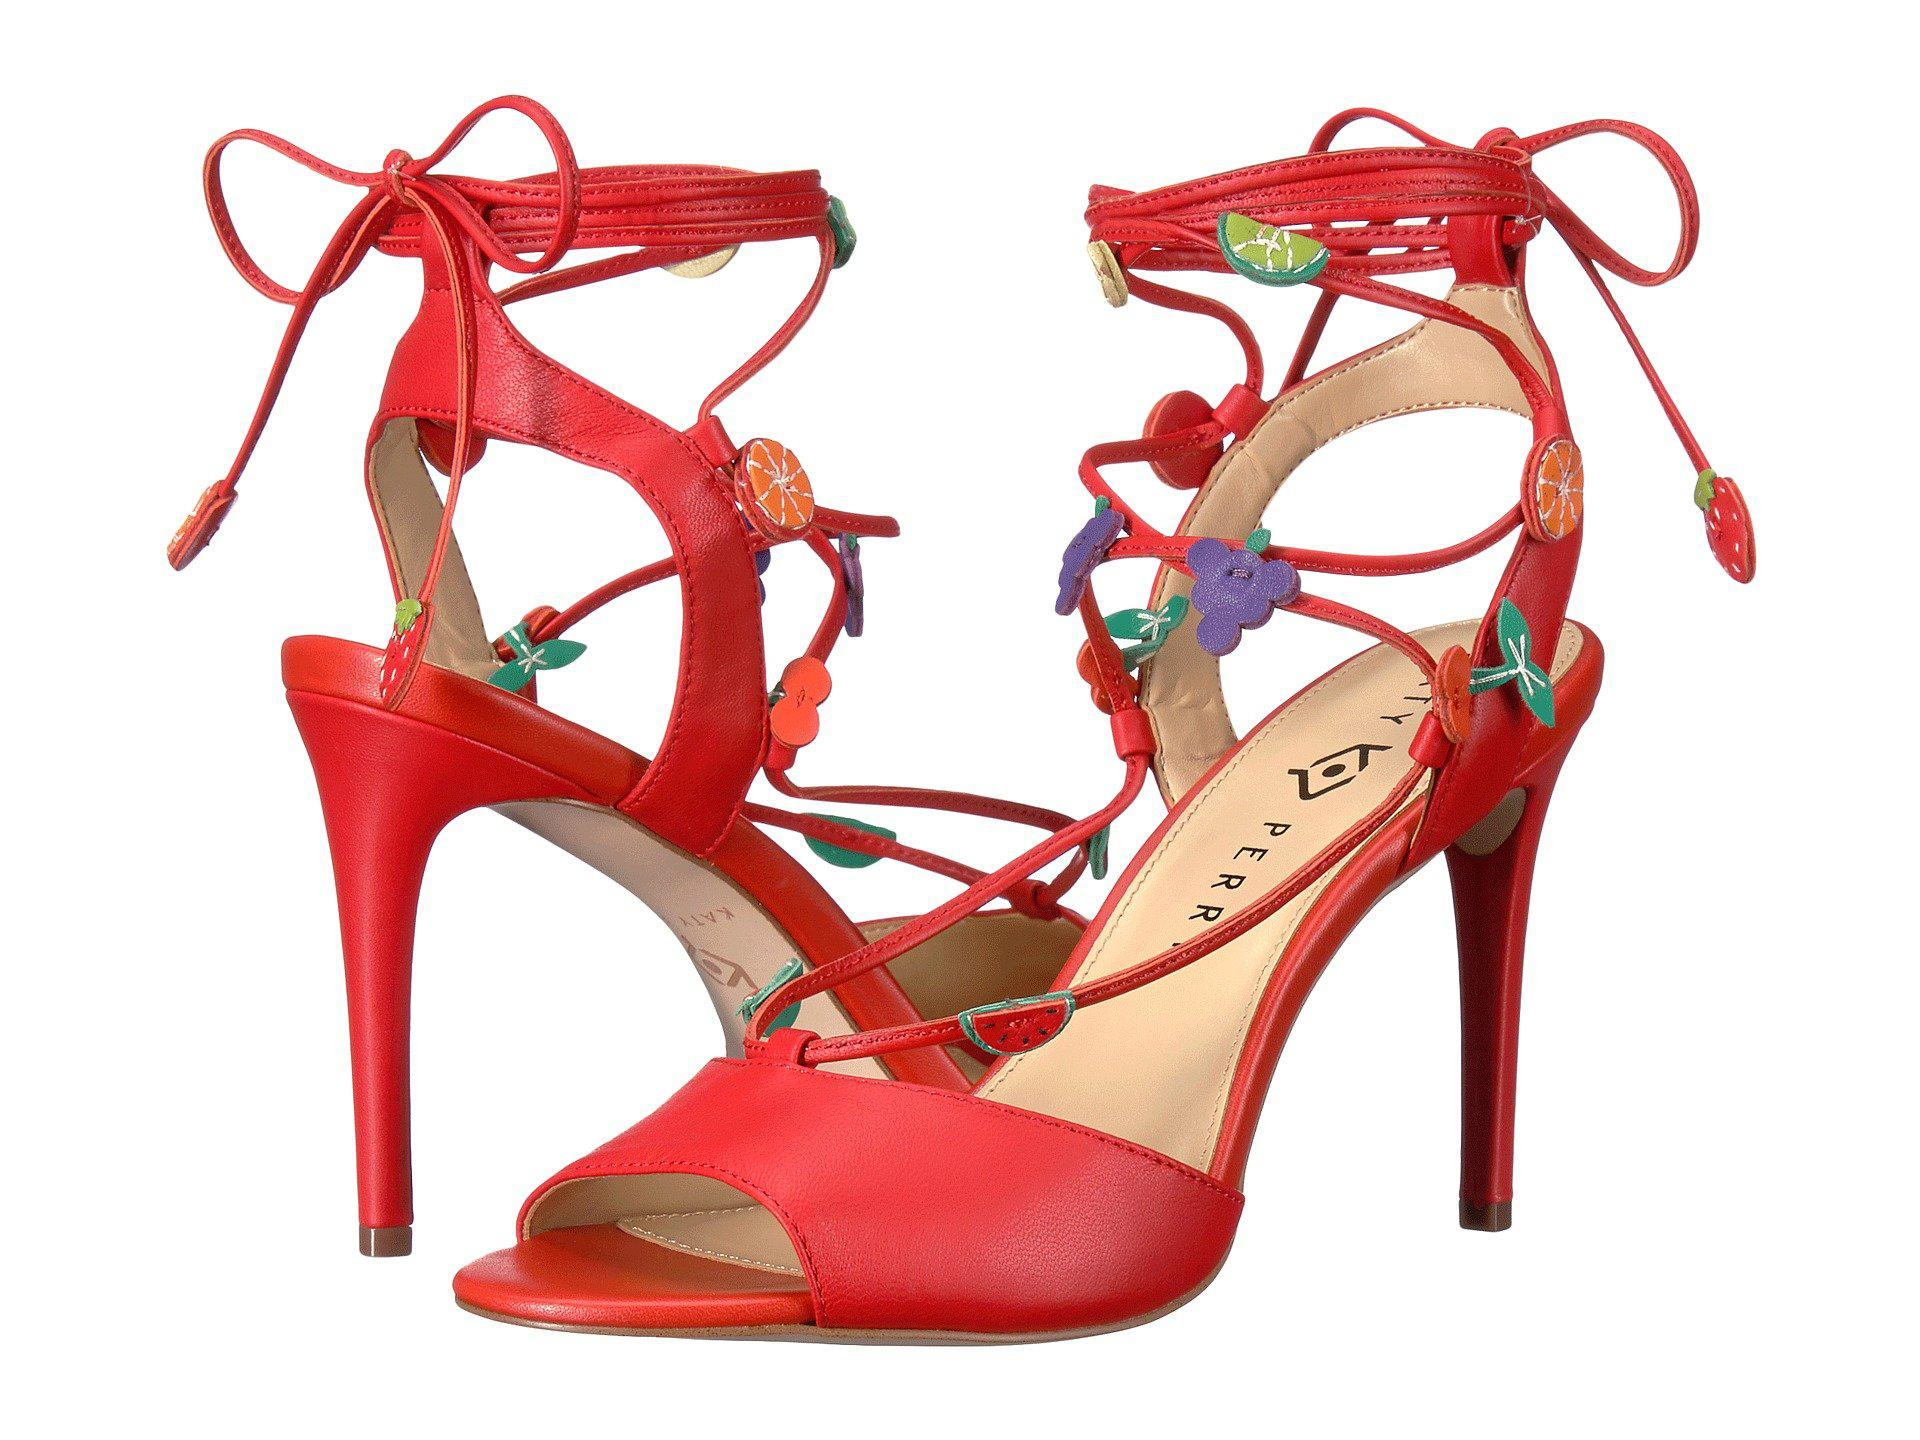 8b5e540cd940 Lyst - Katy Perry The Carmen in Red